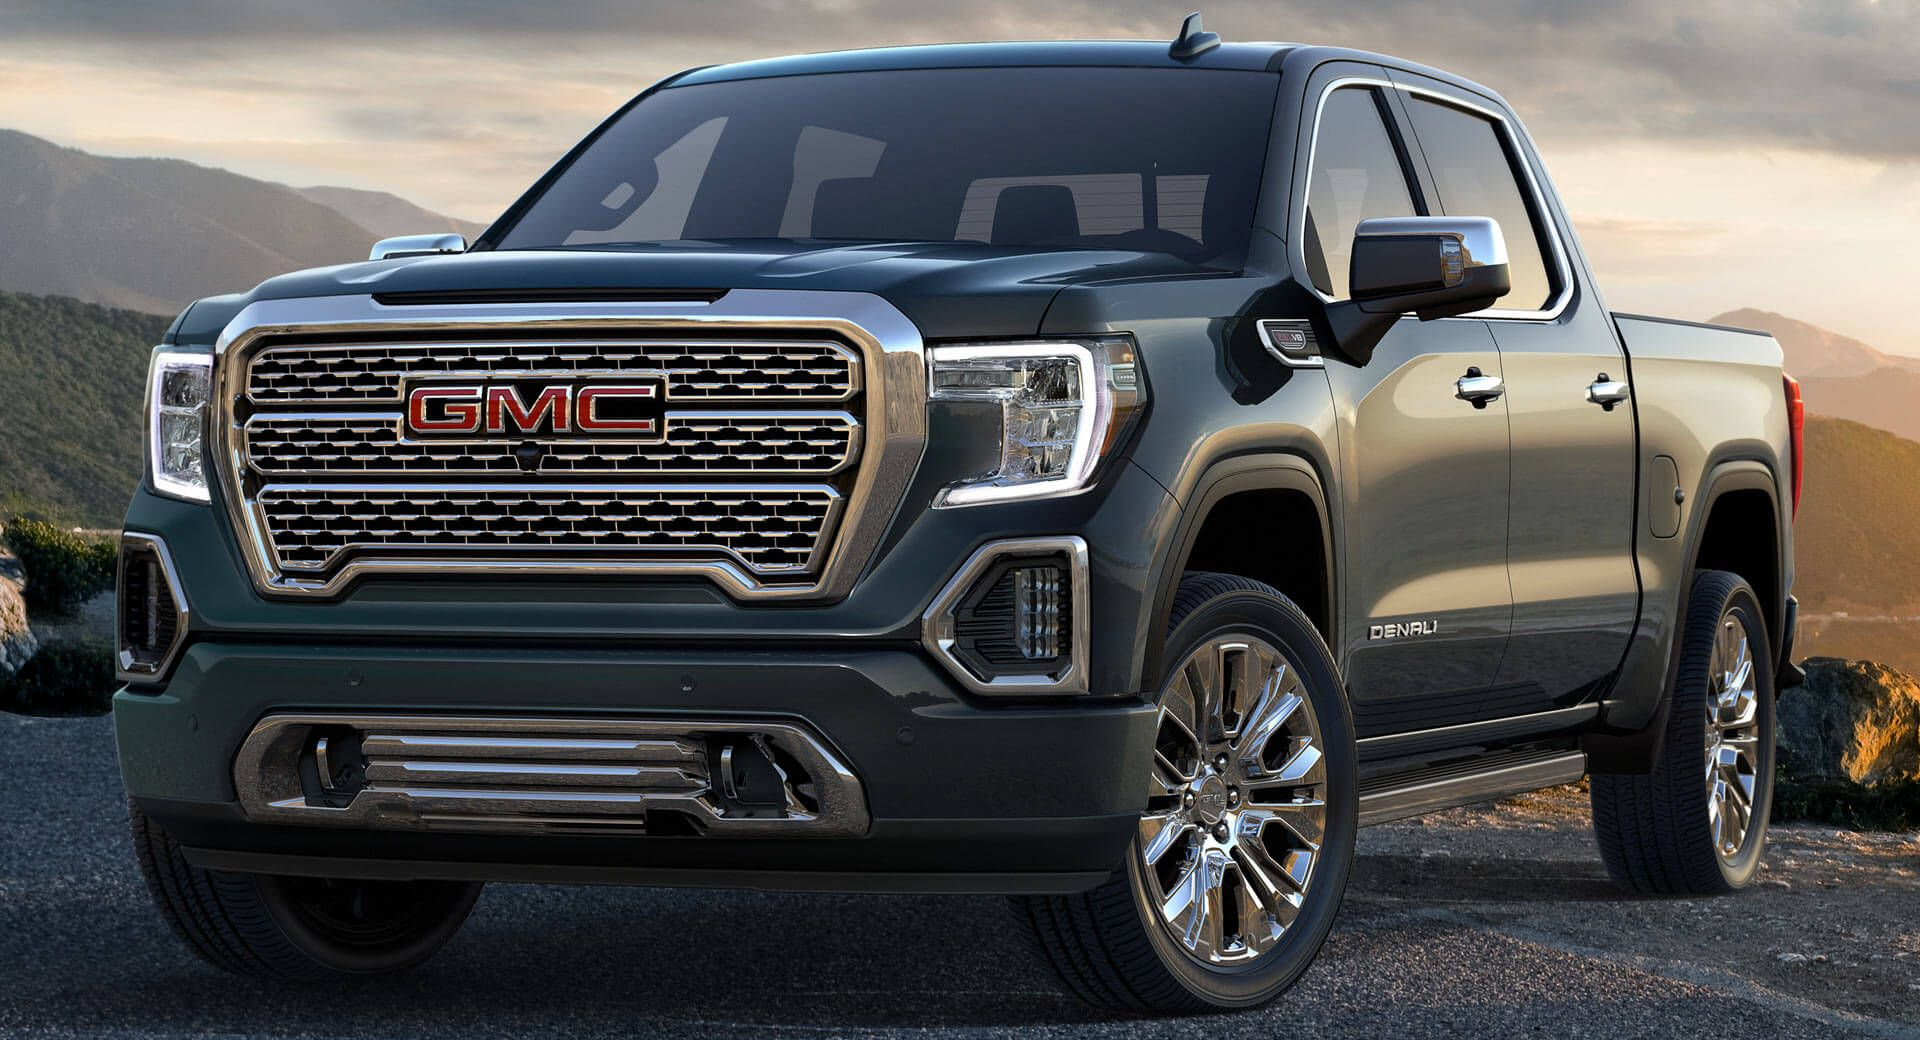 2019 Gmc Sierra Looks To Luxury And Carbon Fiber Bed To Set Apart